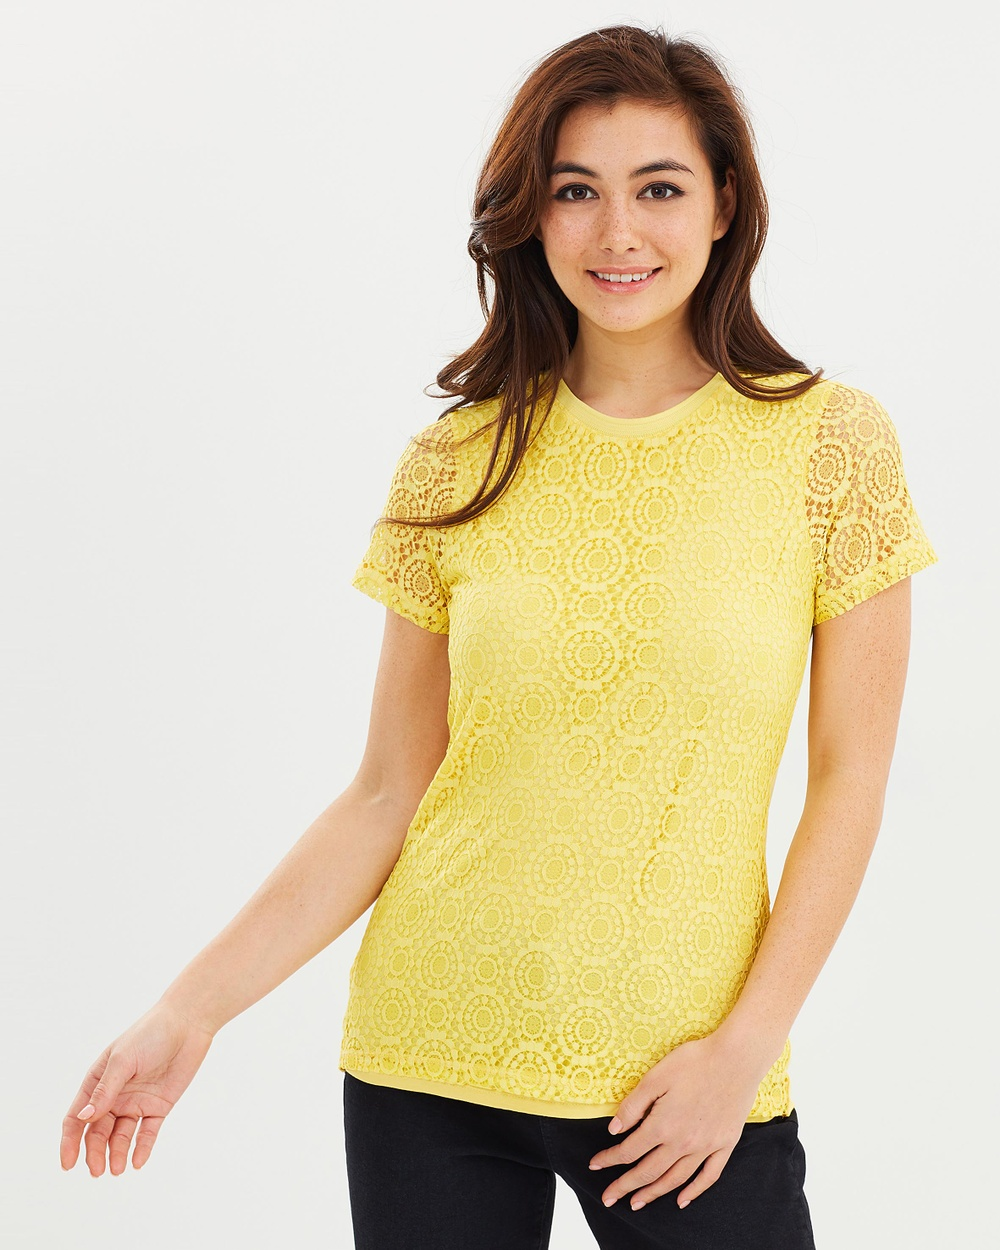 Dorothy Perkins Rib Lace Tee Tops Yellow Rib Lace Tee